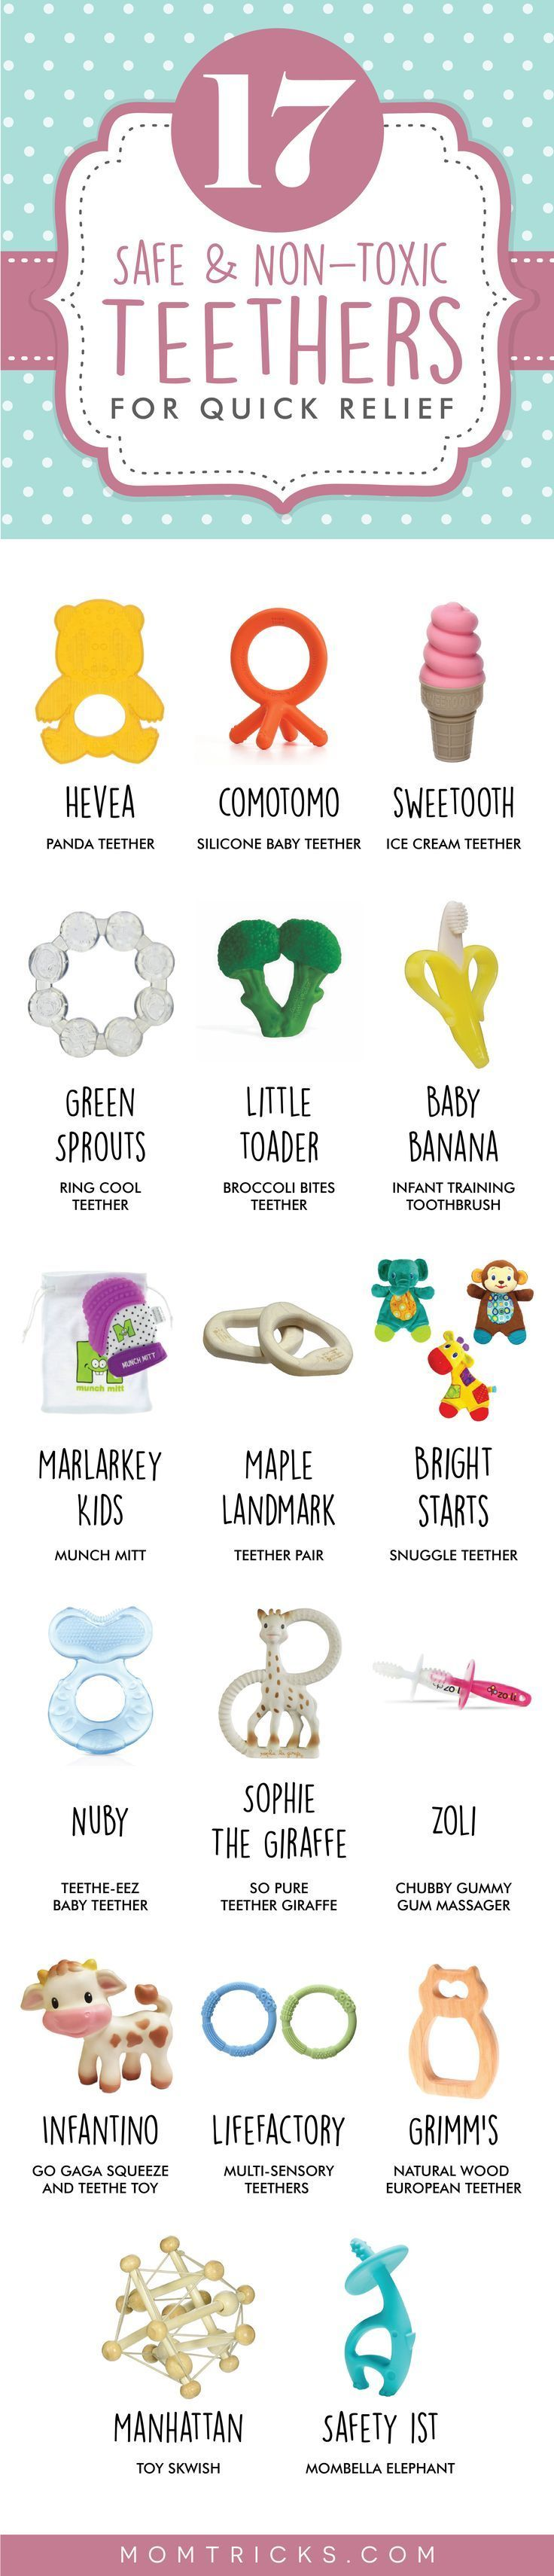 Non toxic teething toys does not